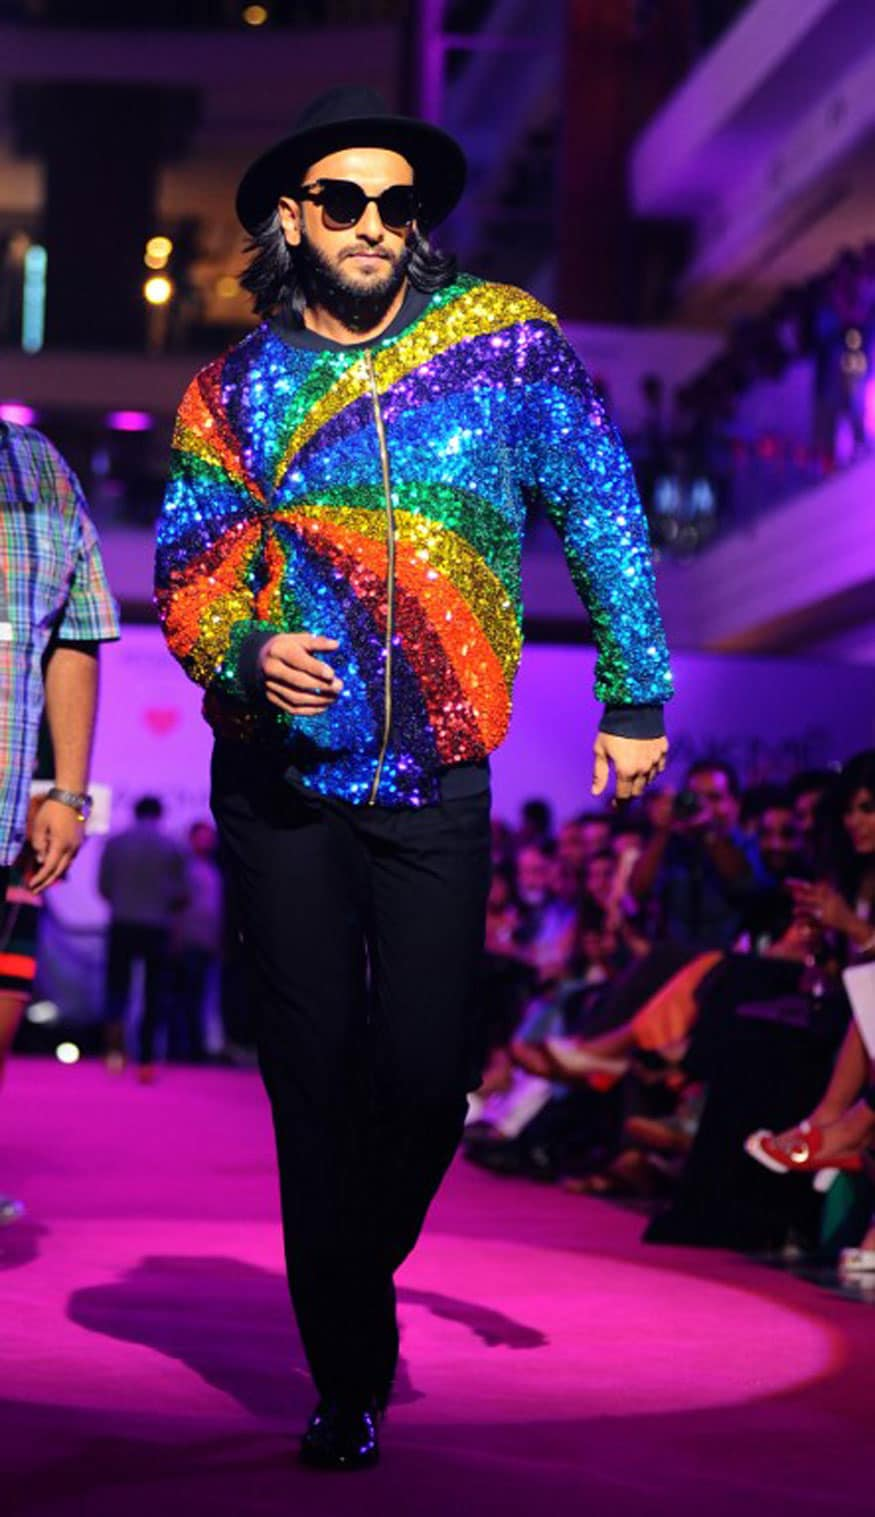 Ranveer Singh poses for a photograph during the Lakme Fashion Week (LFW) Winter/Festive 2017 in Mumbai. (Image: AFP)